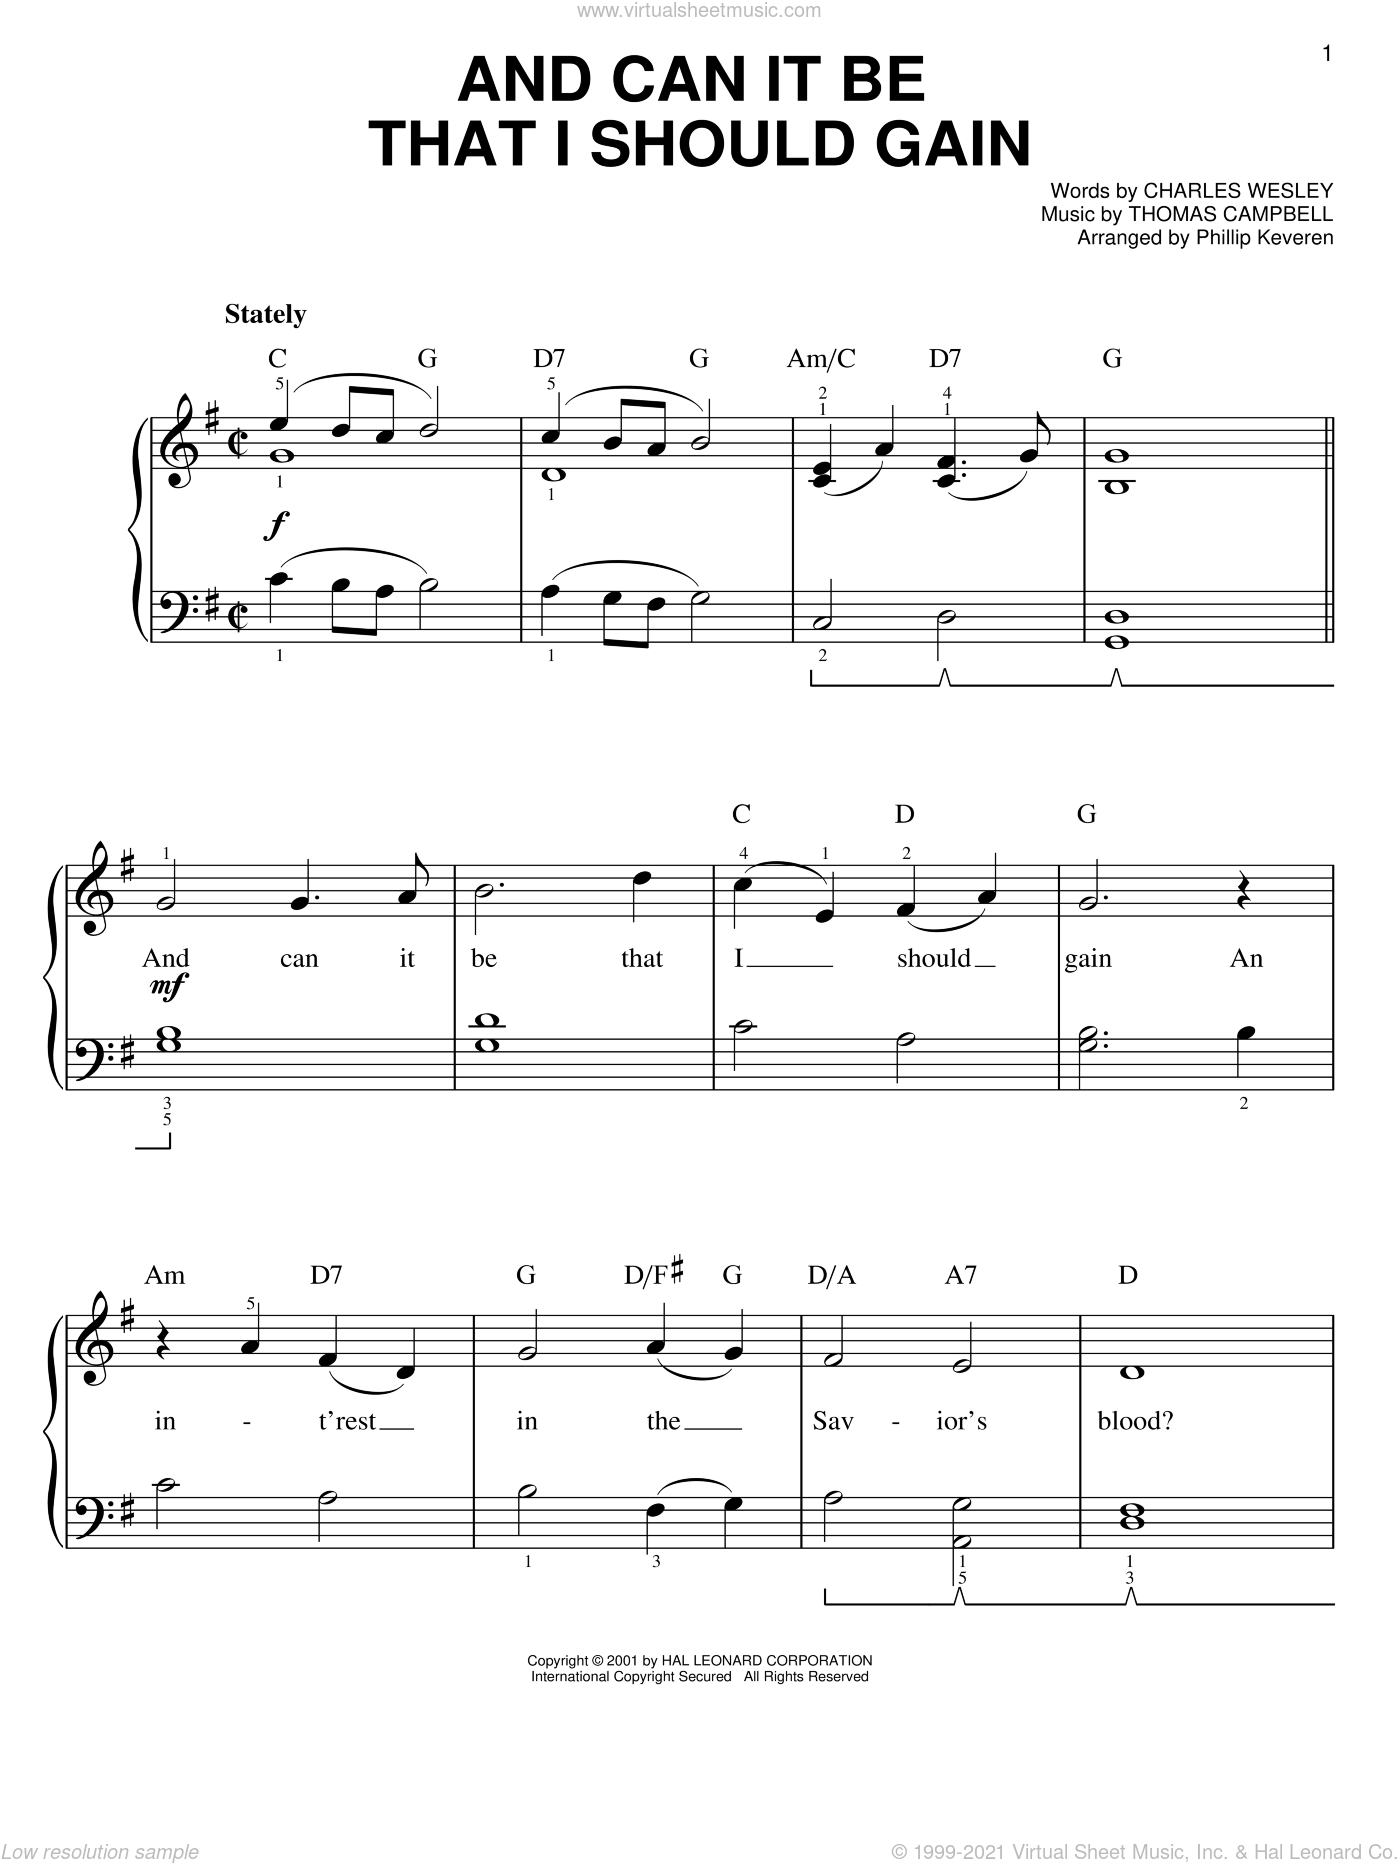 And Can It Be That I Should Gain sheet music for piano solo by Charles Wesley, Phillip Keveren and Thomas Campbell, easy skill level